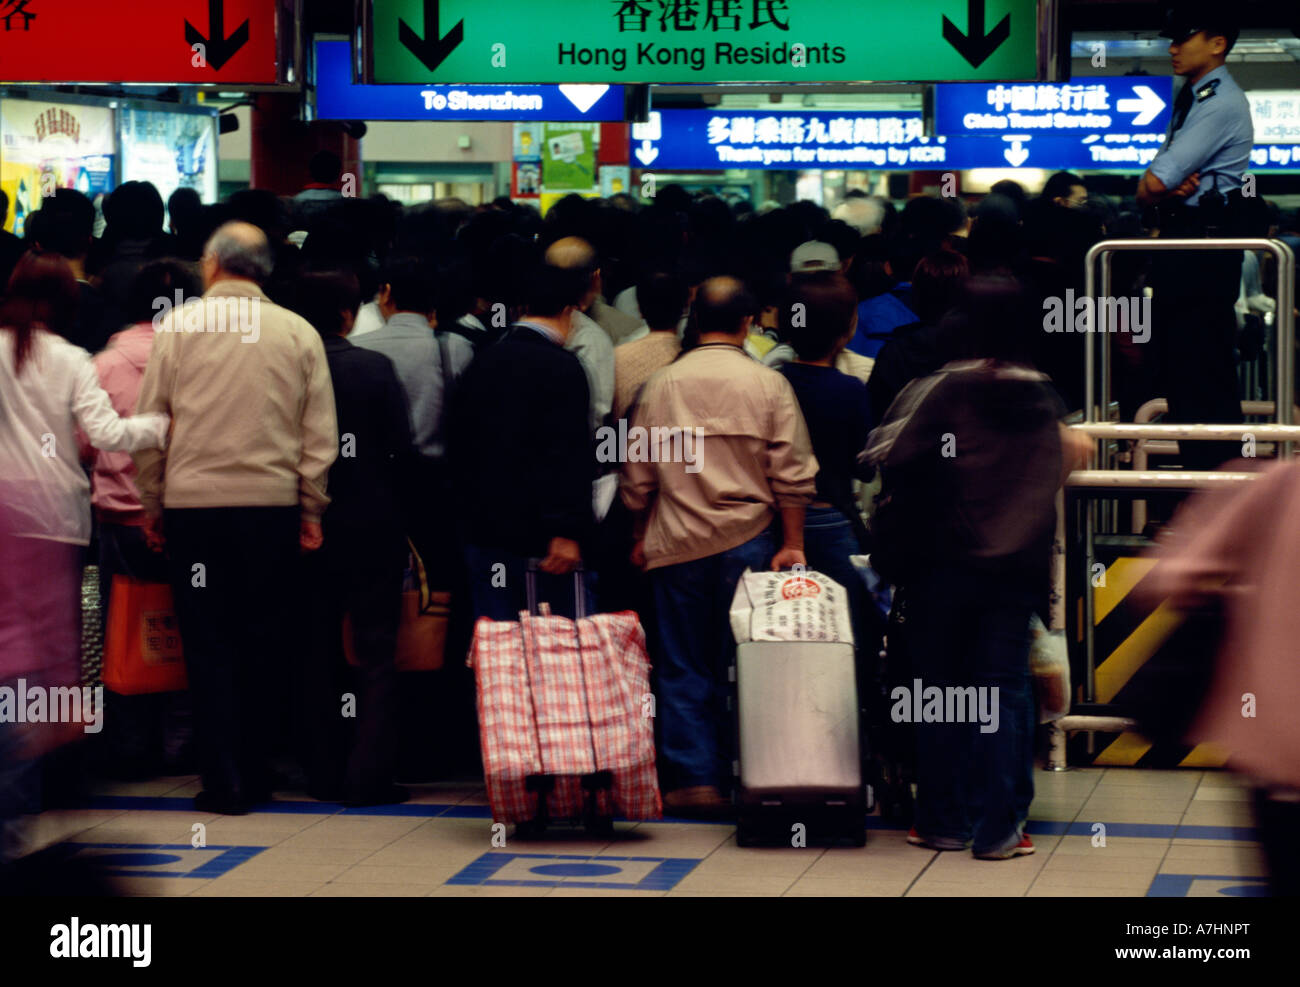 Crowds of people queue at the customs and immigration channels - Stock Image